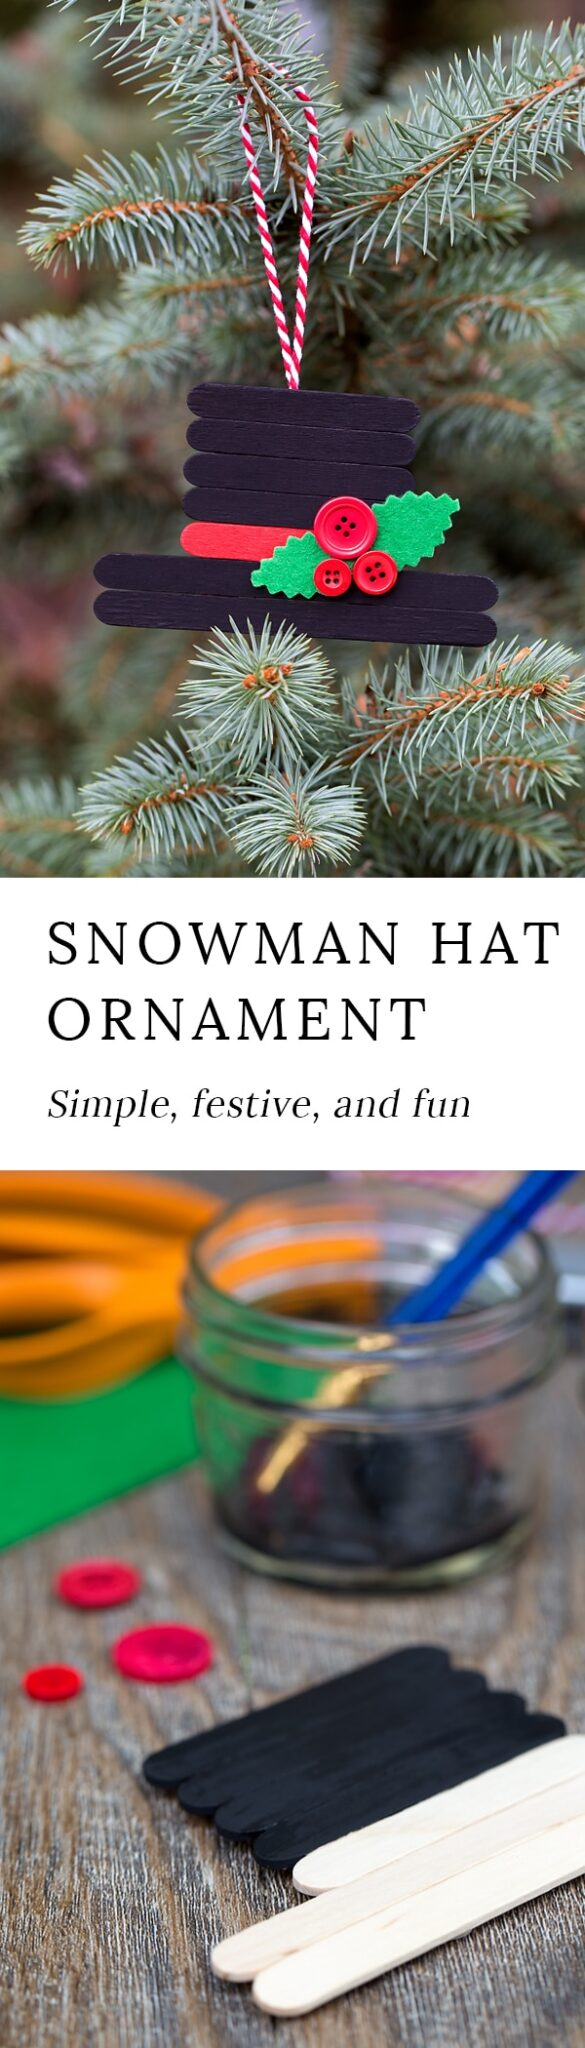 'Tis the season for fun, festive Christmas ornaments! This creative Snowman Hat Ornament is a cute Christmas craft for crafters of all ages.